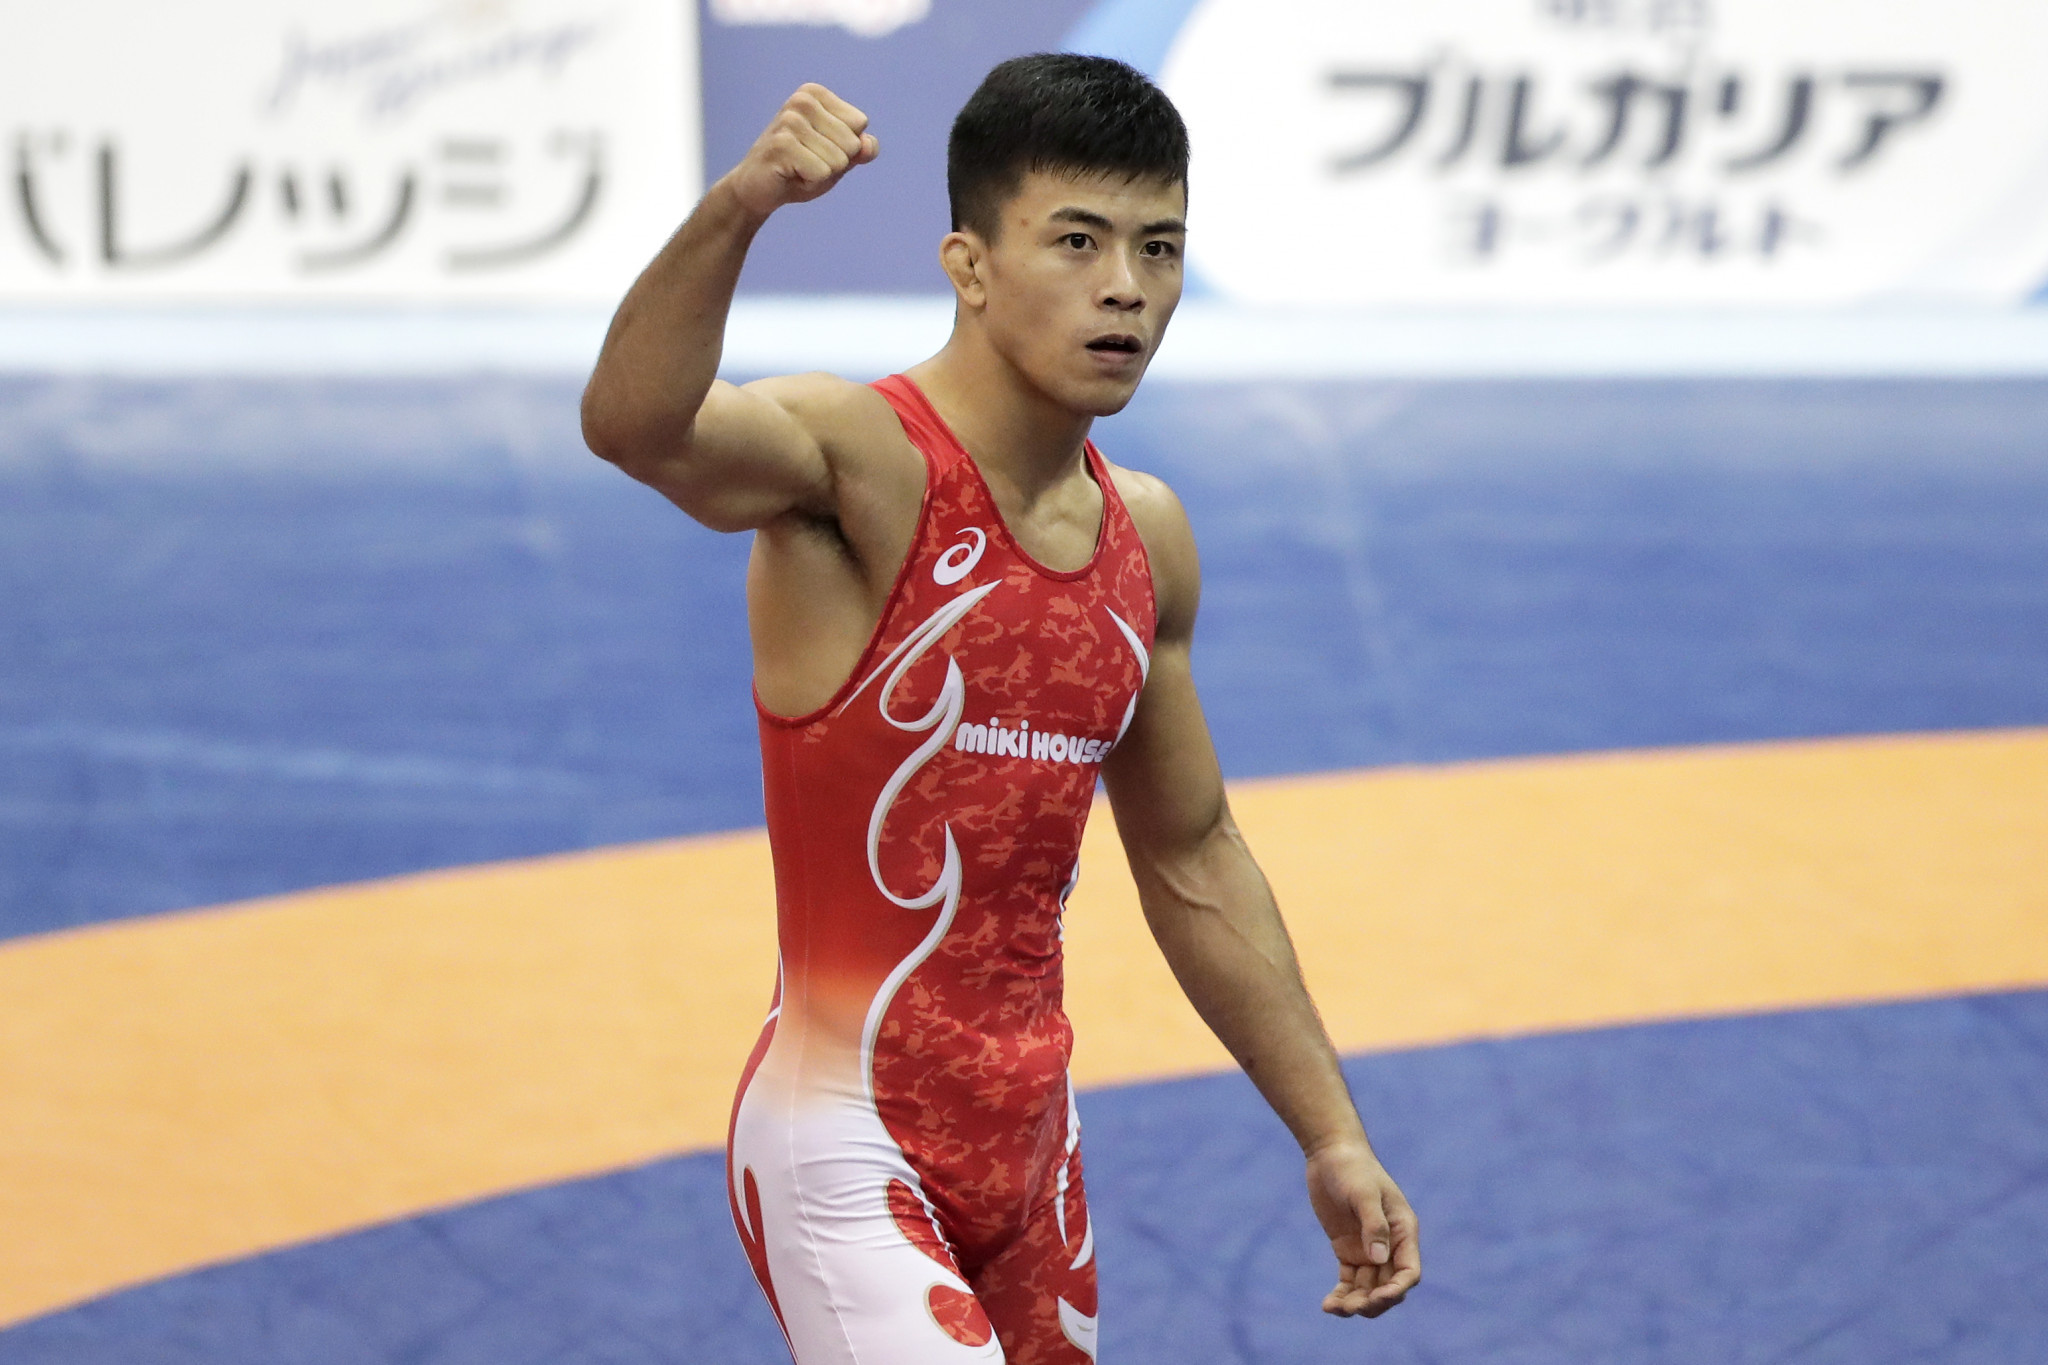 Fumita raises home hopes for Tokyo 2020 as he regains title at World Wrestling Championships